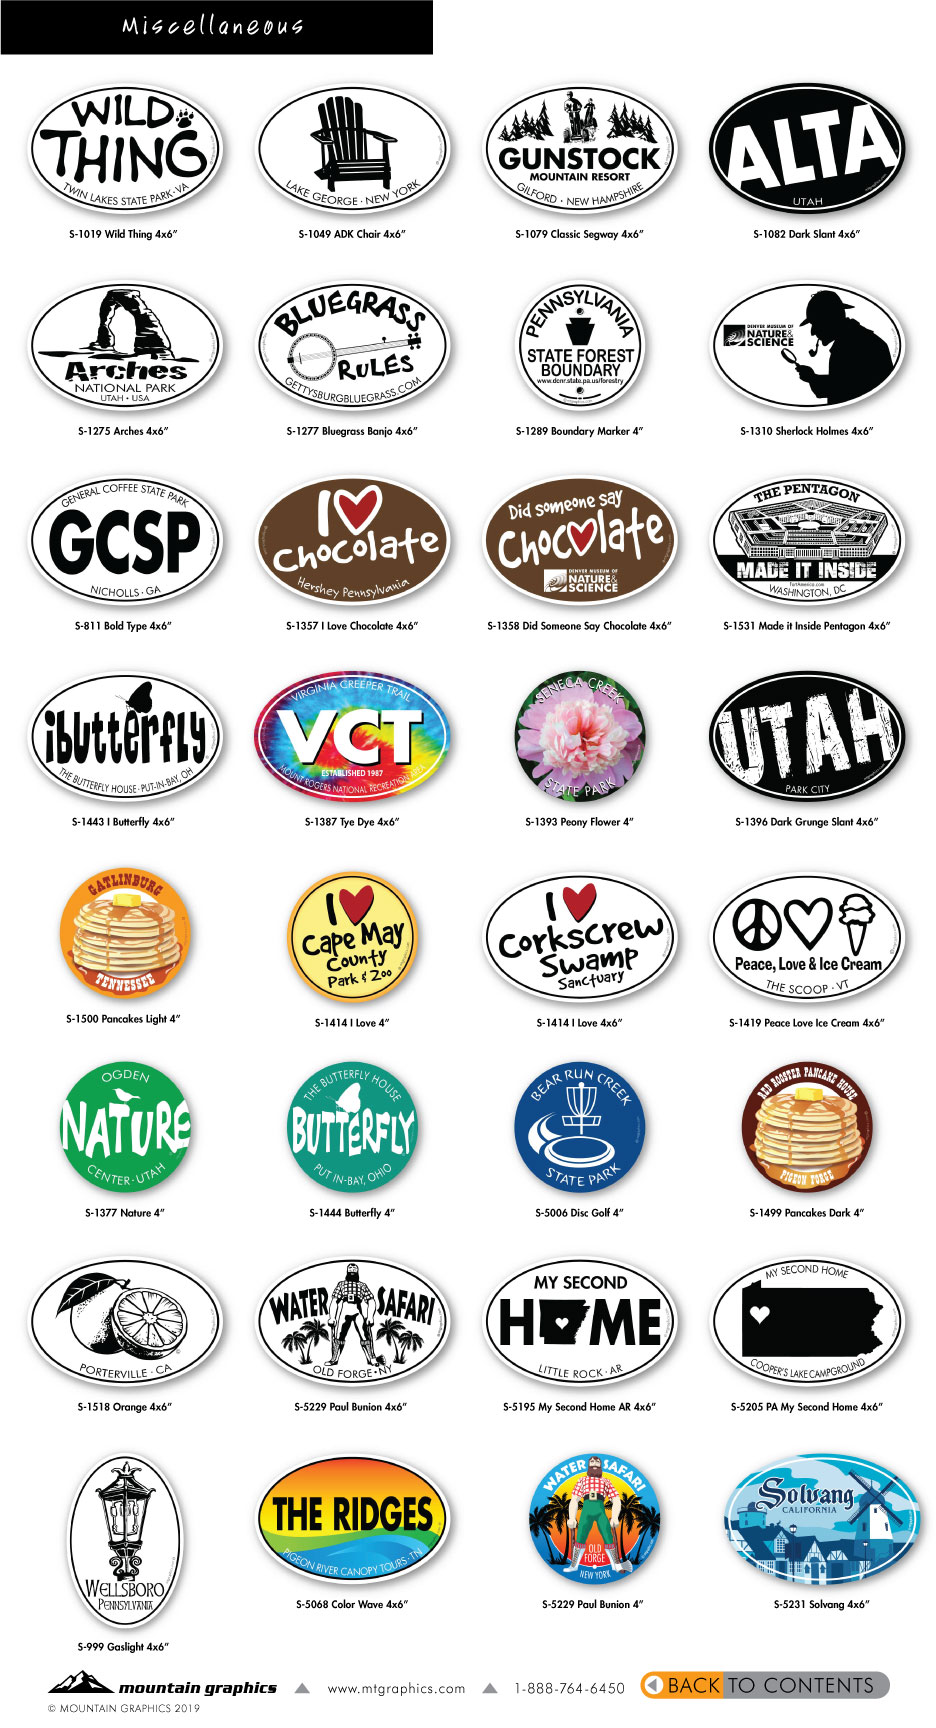 2019-digital-catalog-stickers24.jpg